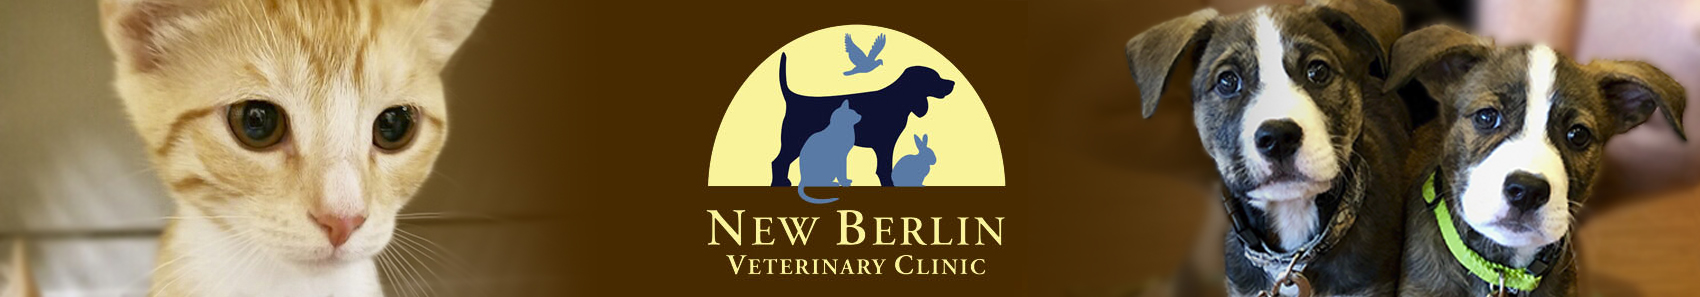 Marcy Veterinary Clinic